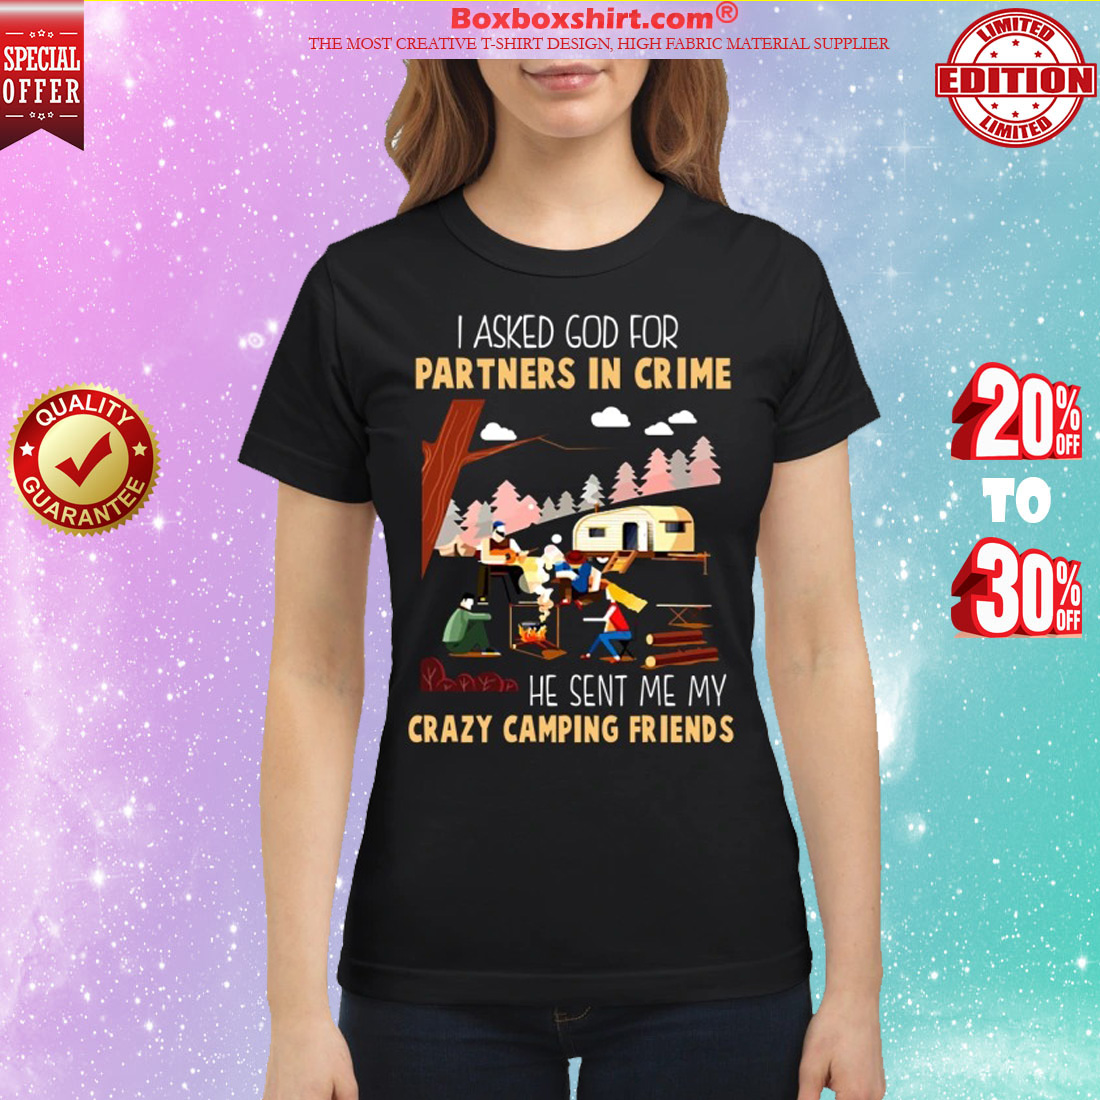 I asked god for partners in crime he sent me my crazy camping friends classic shirt